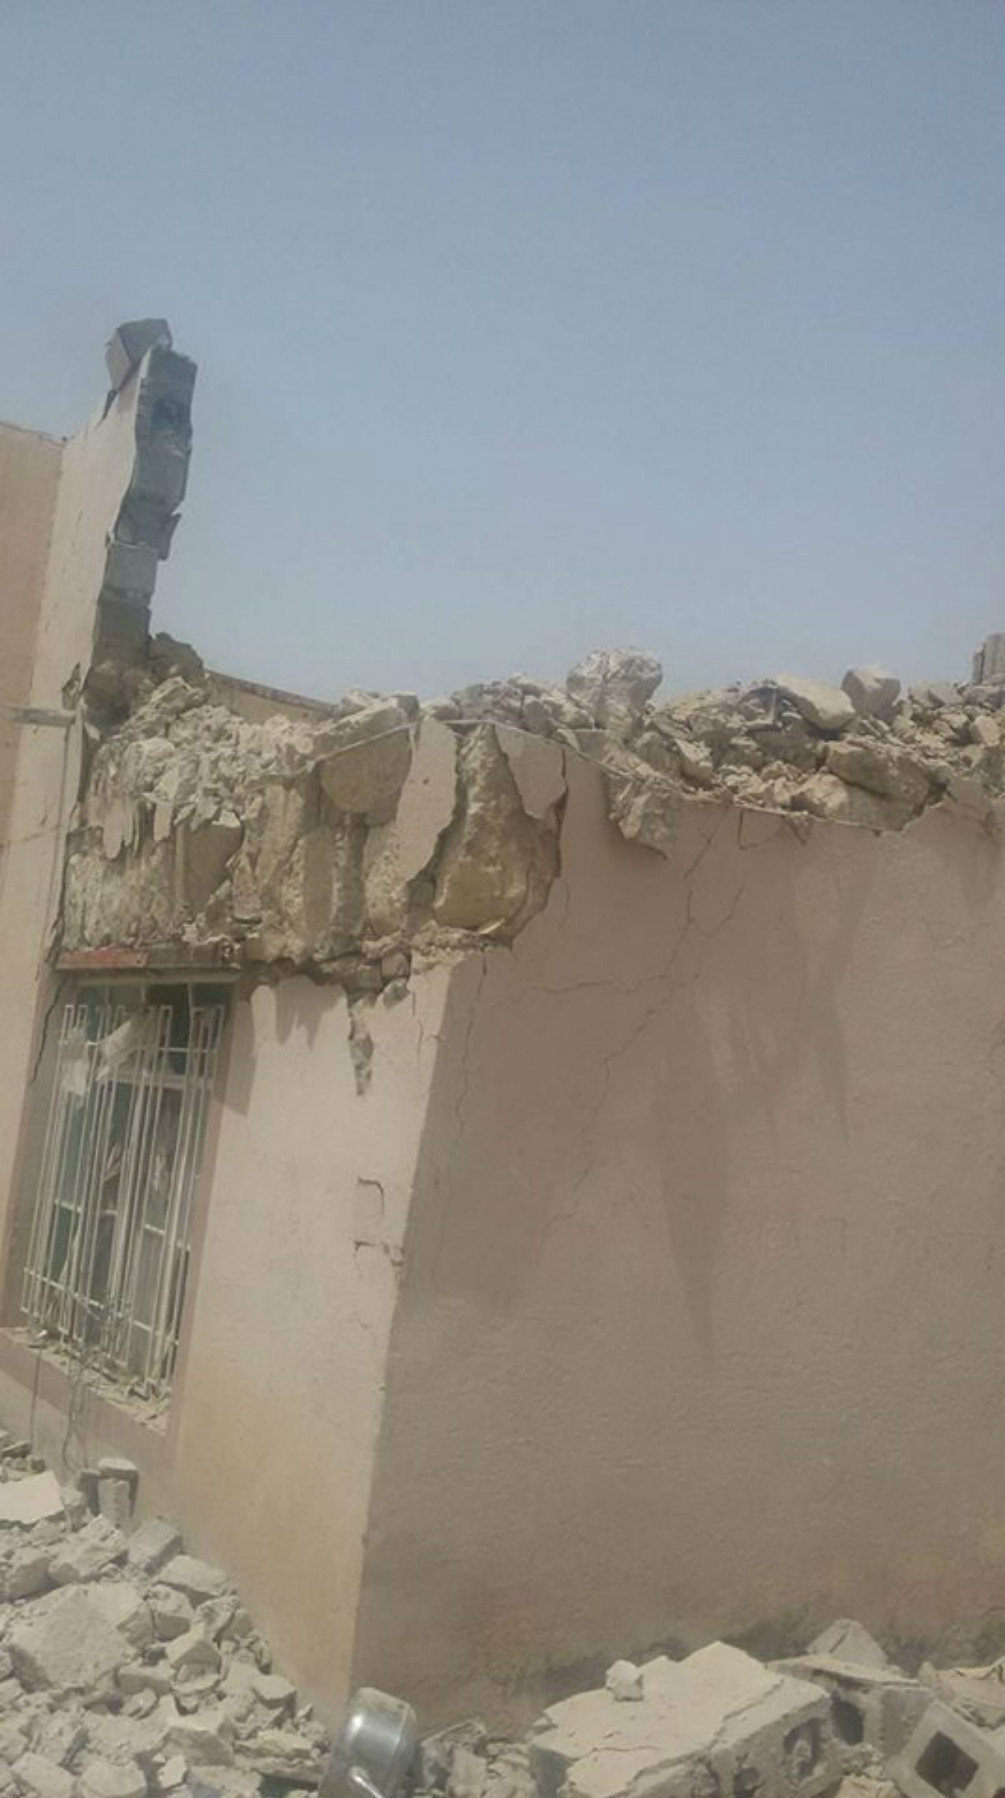 The consequences of the Daesh missile attack on the town of Al-Khalidiya